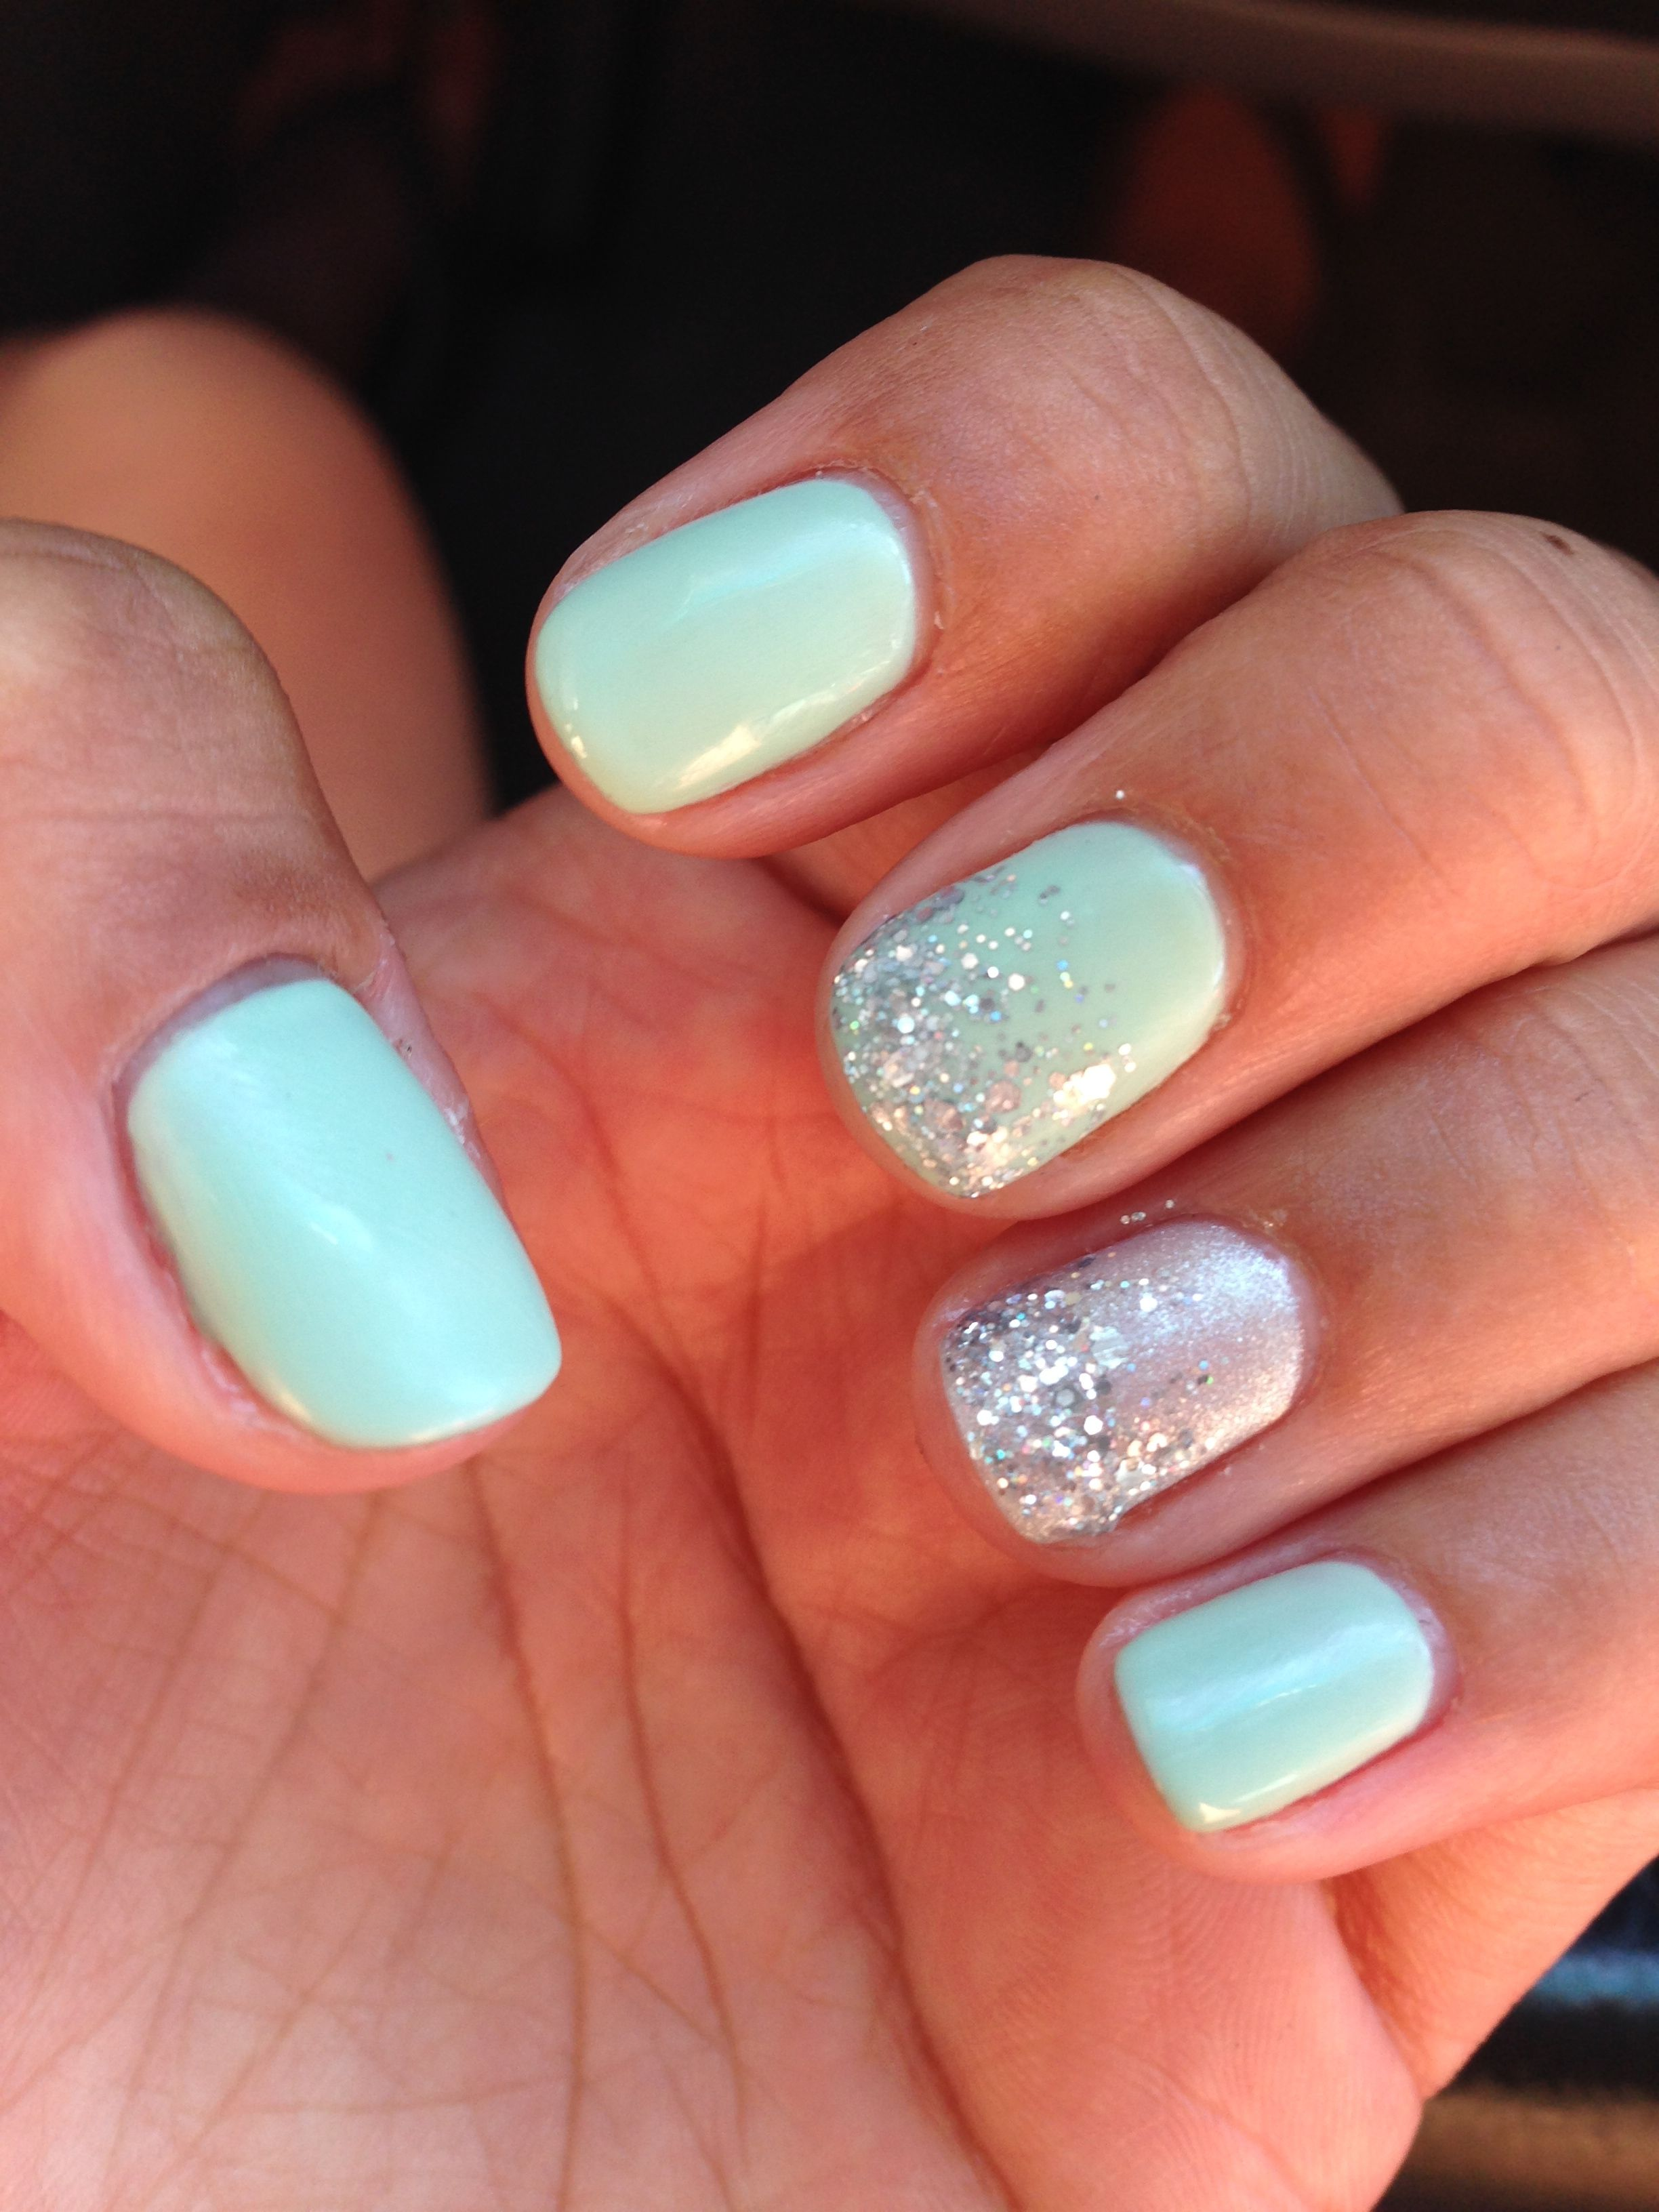 Mint shellac nails with sparkle #nails #teal #sparkle | Getting ...